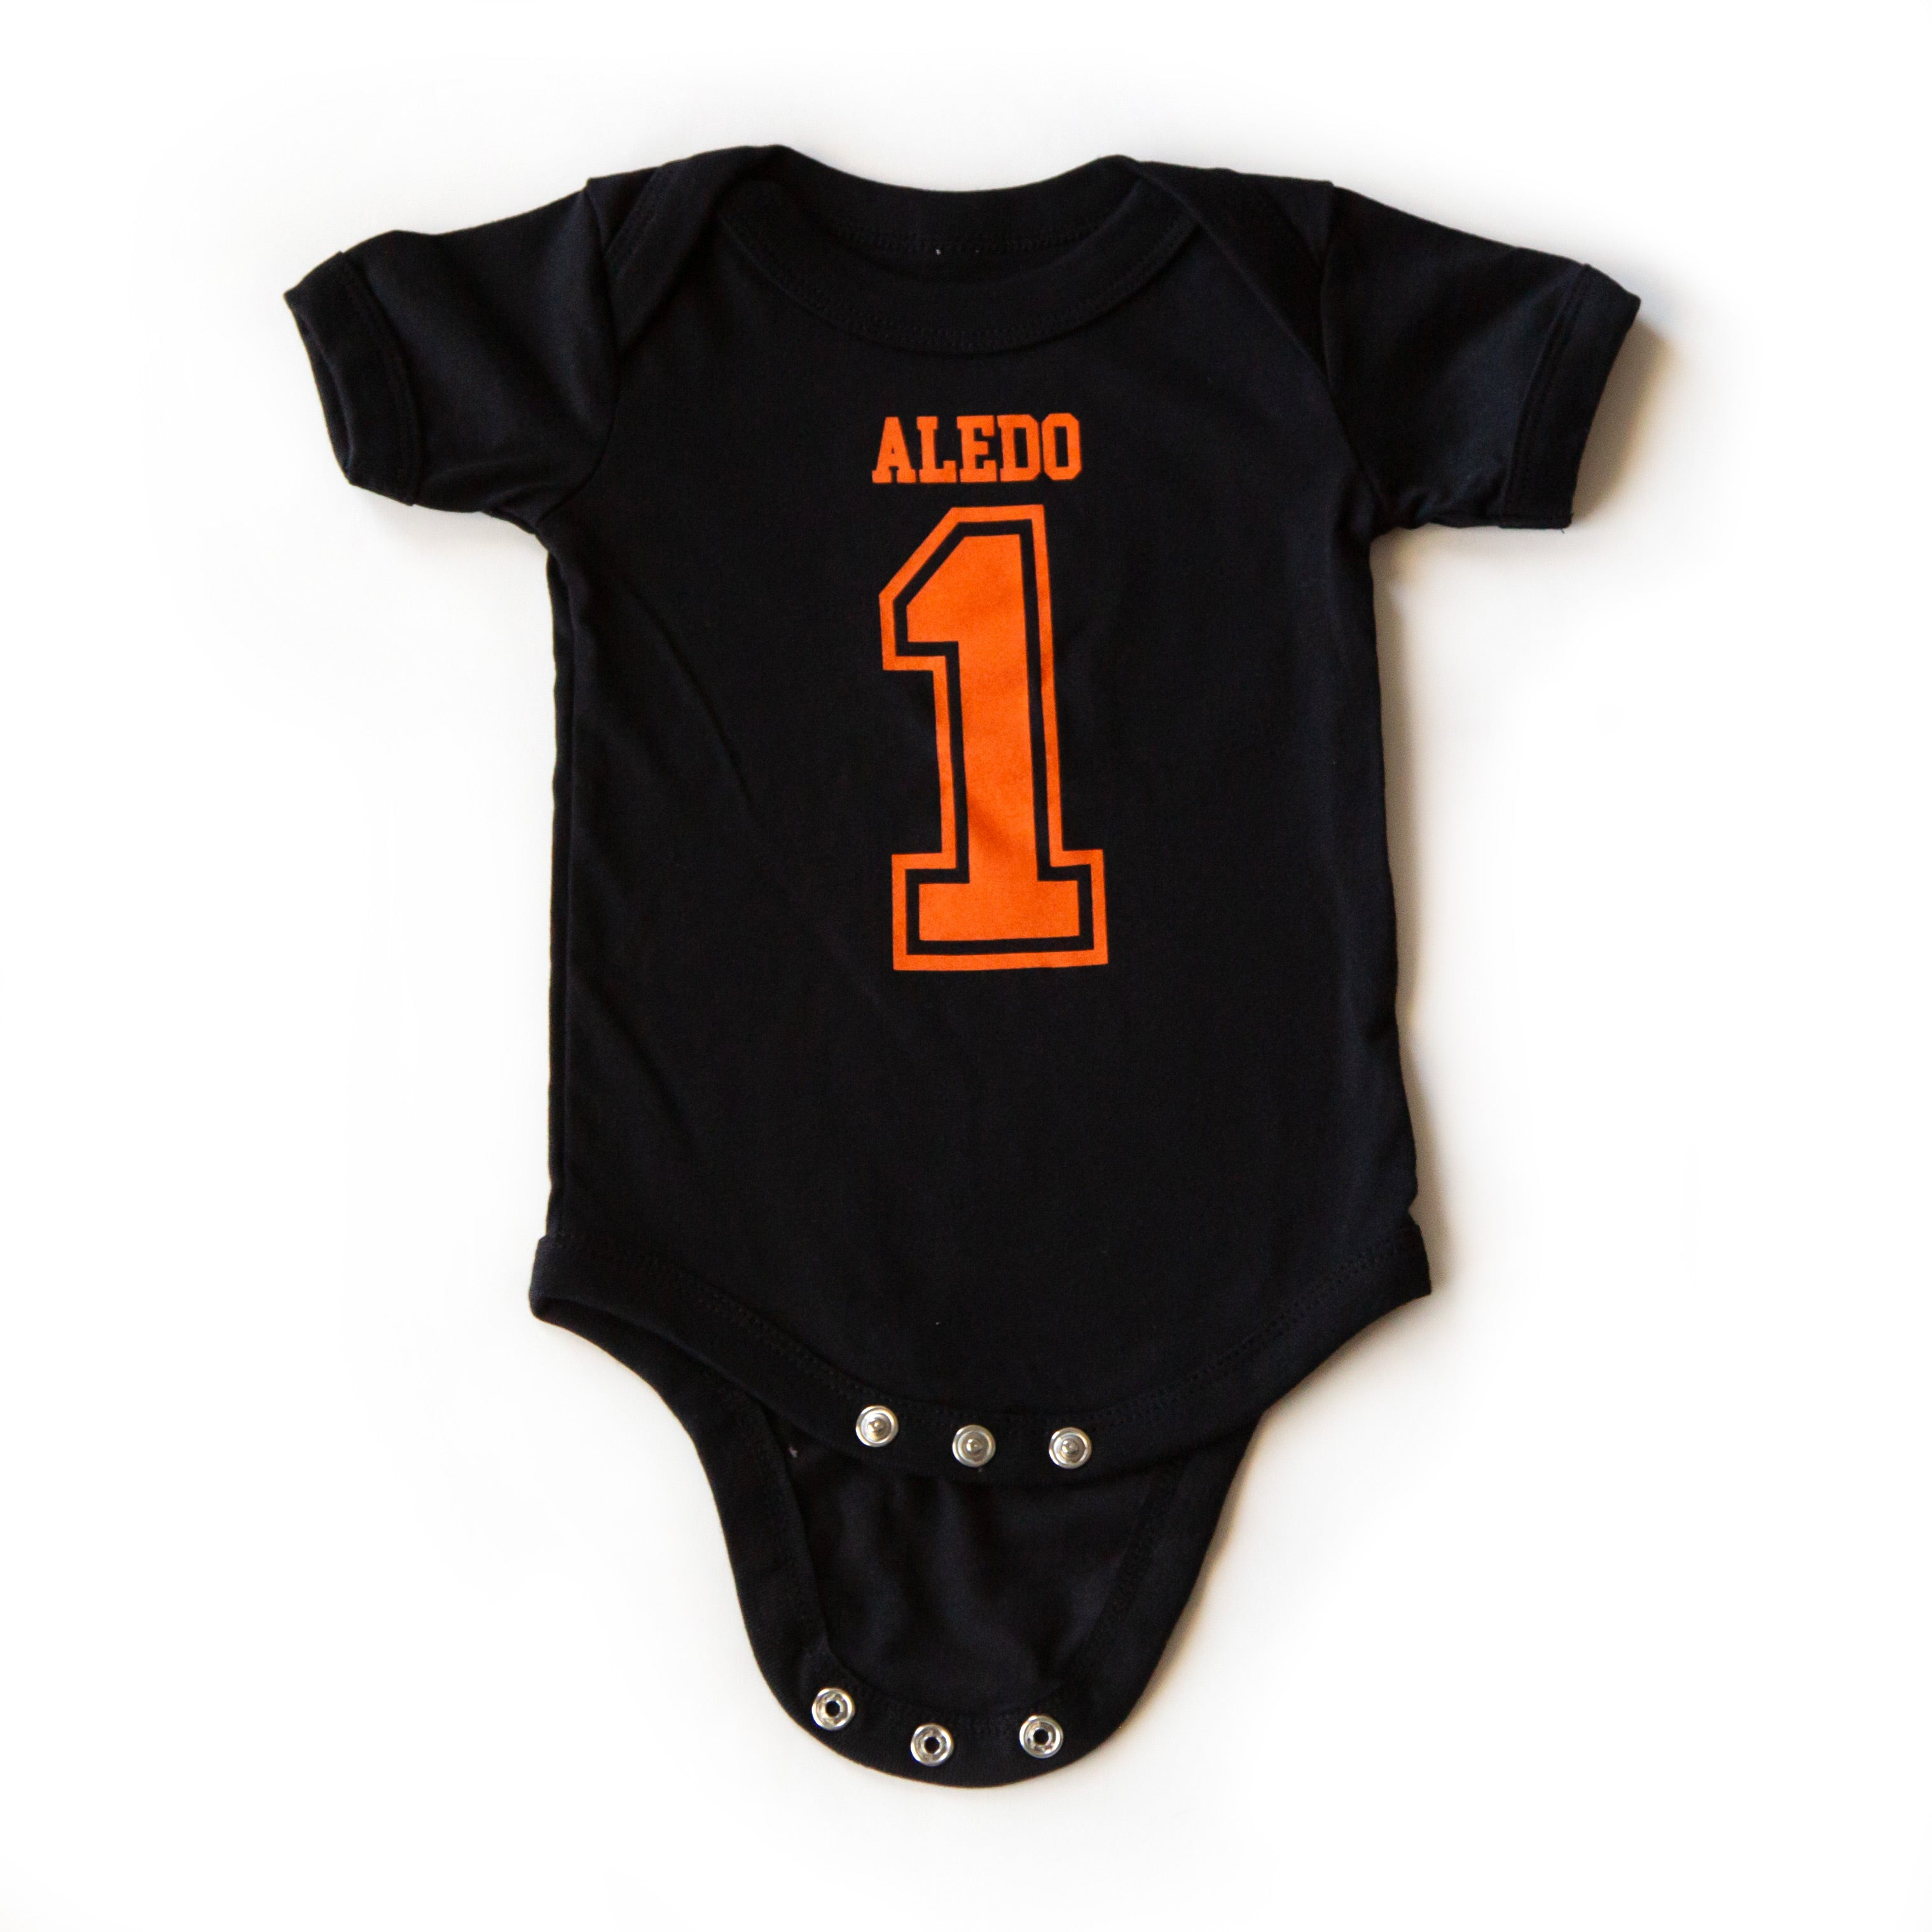 Aledo One - INFANT / TODDLER